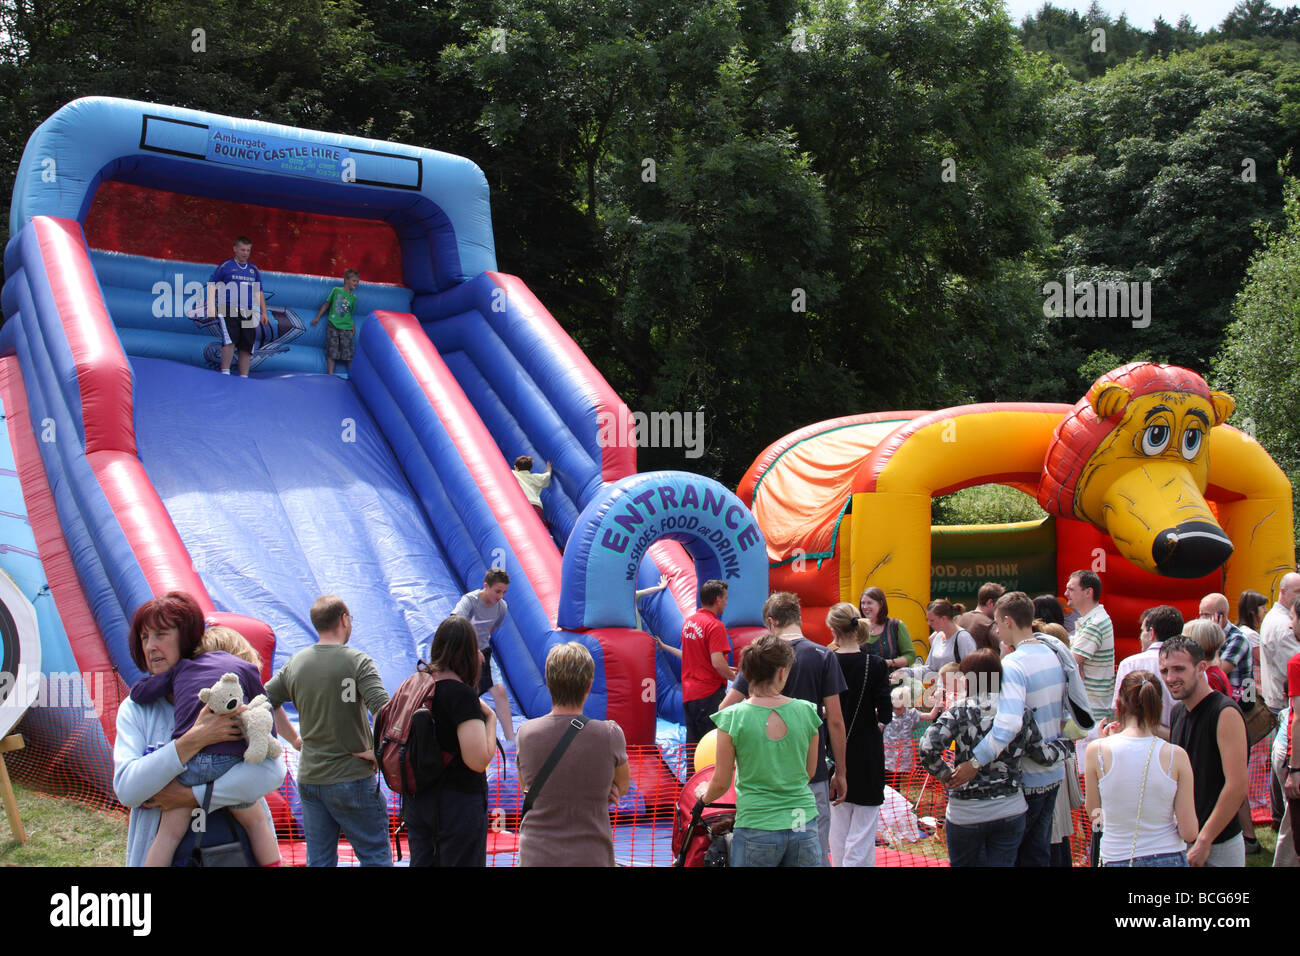 Children on an inflatable slide at an English village show. Ambergate, Derbyshire, England, U.K. - Stock Image